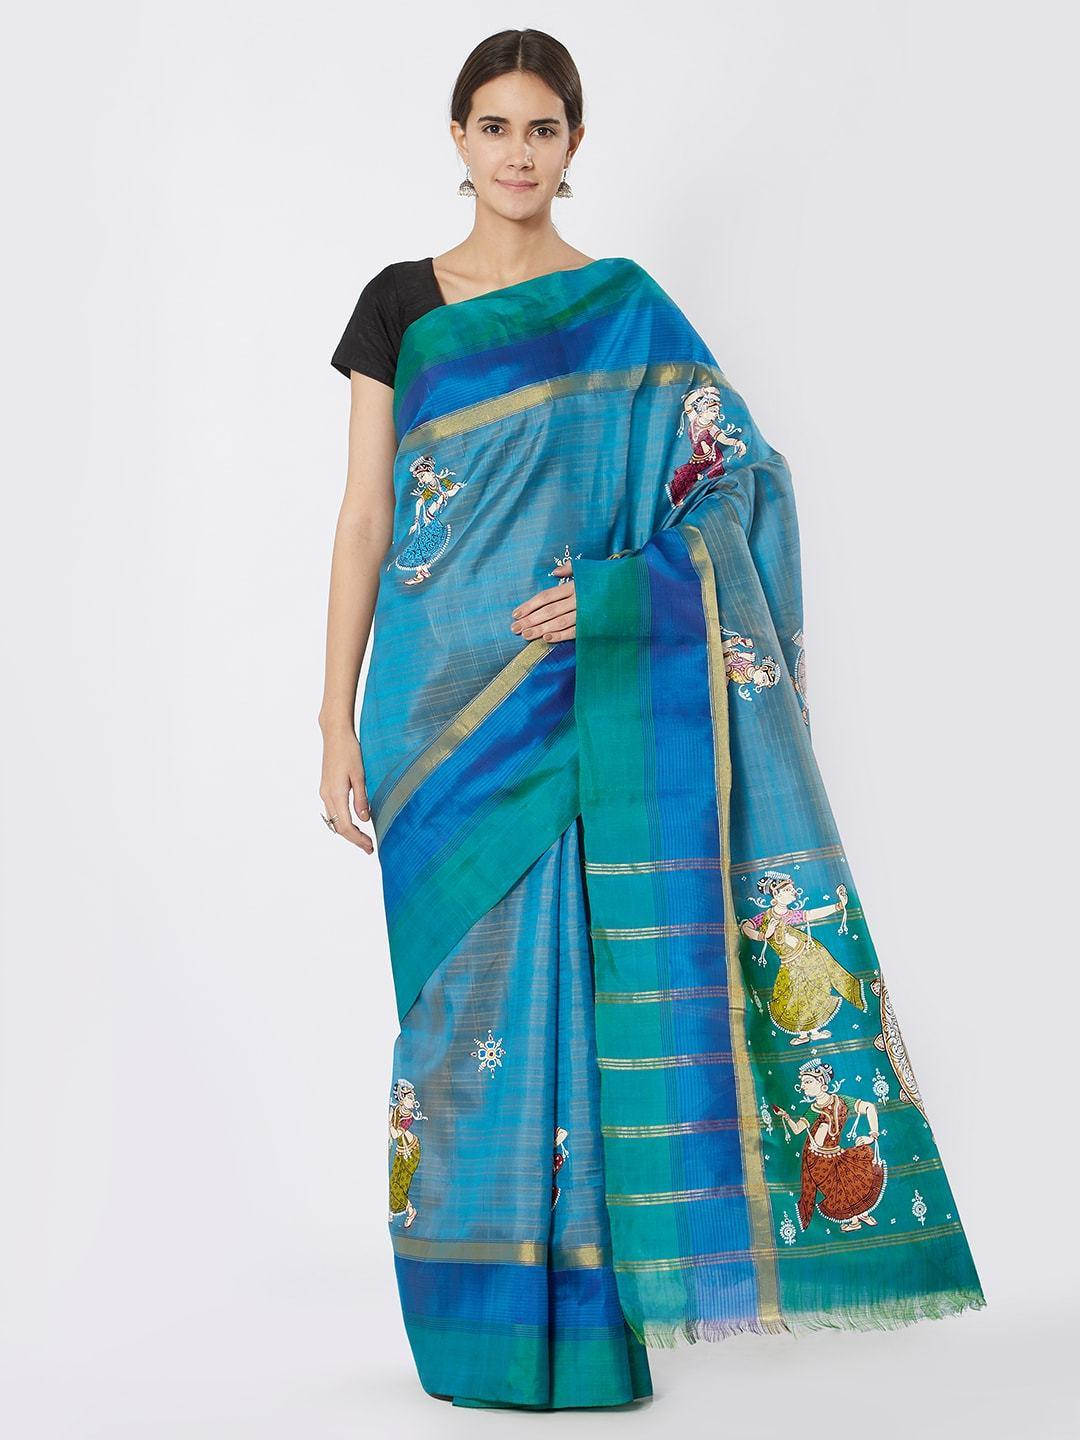 CraftsCollection.in - Blue Upada Silk with Pattachitra motifs